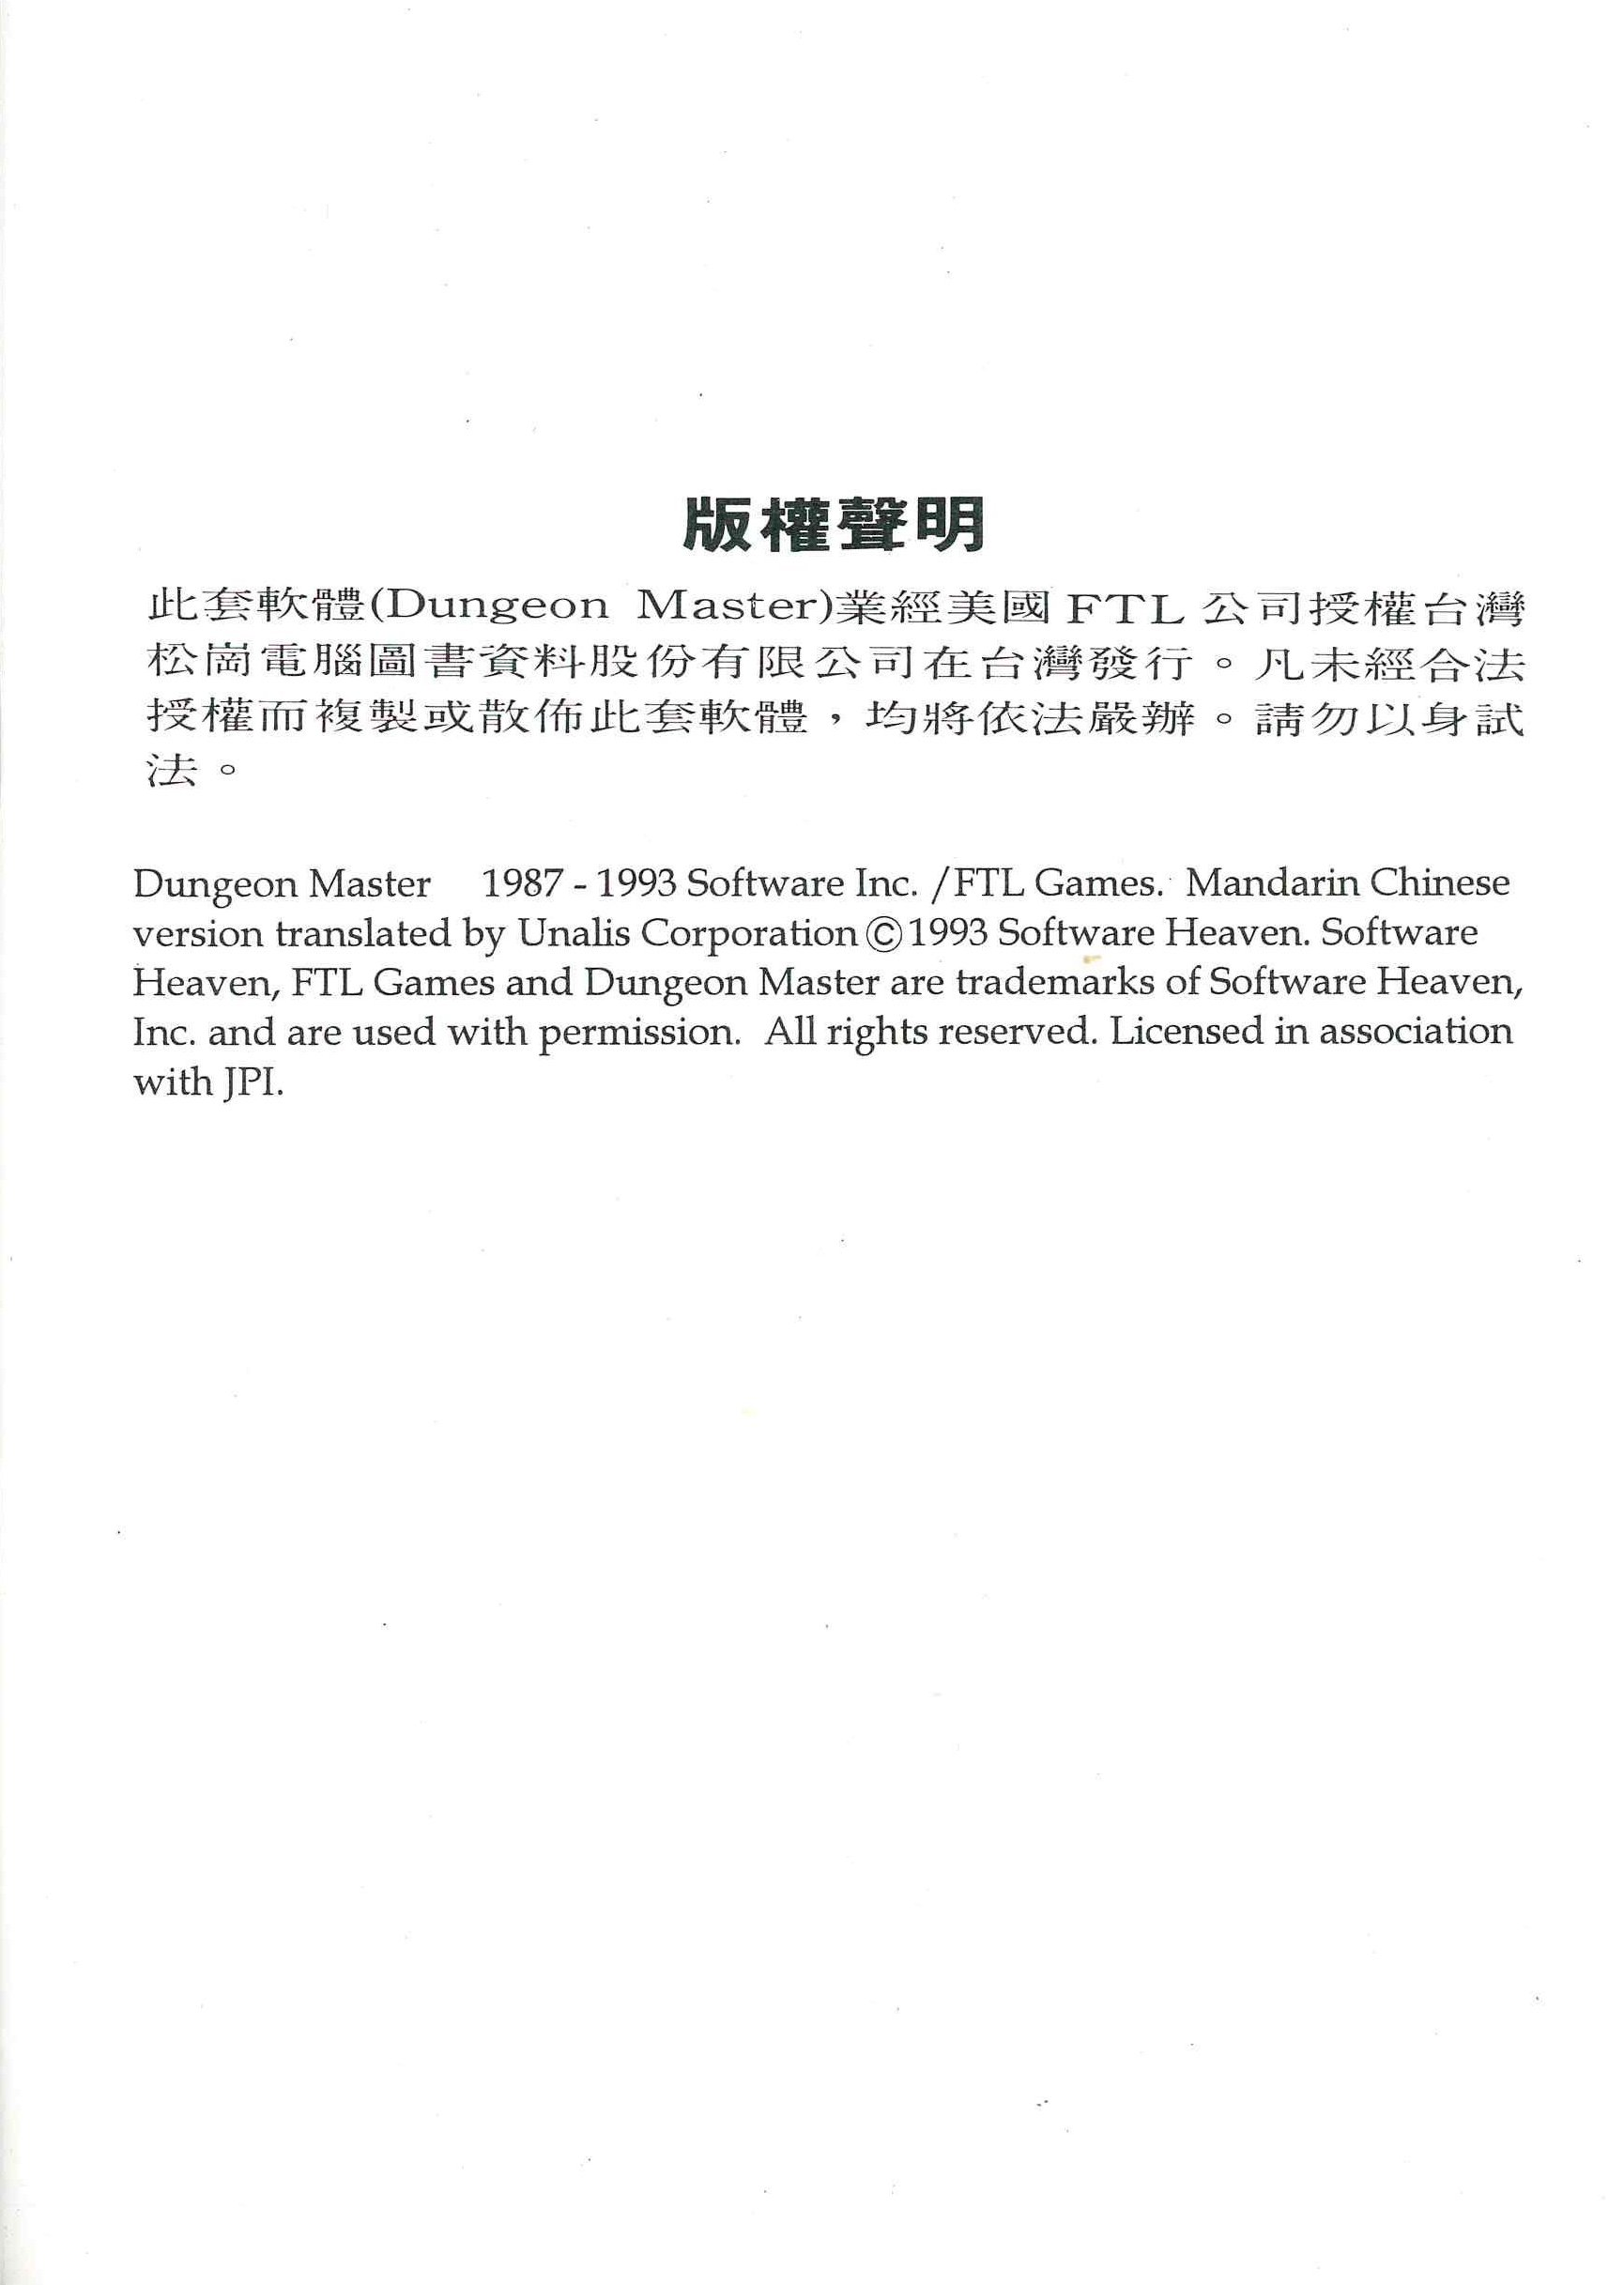 Game - Dungeon Master - CN - PC - Manual - Page 003 - Scan